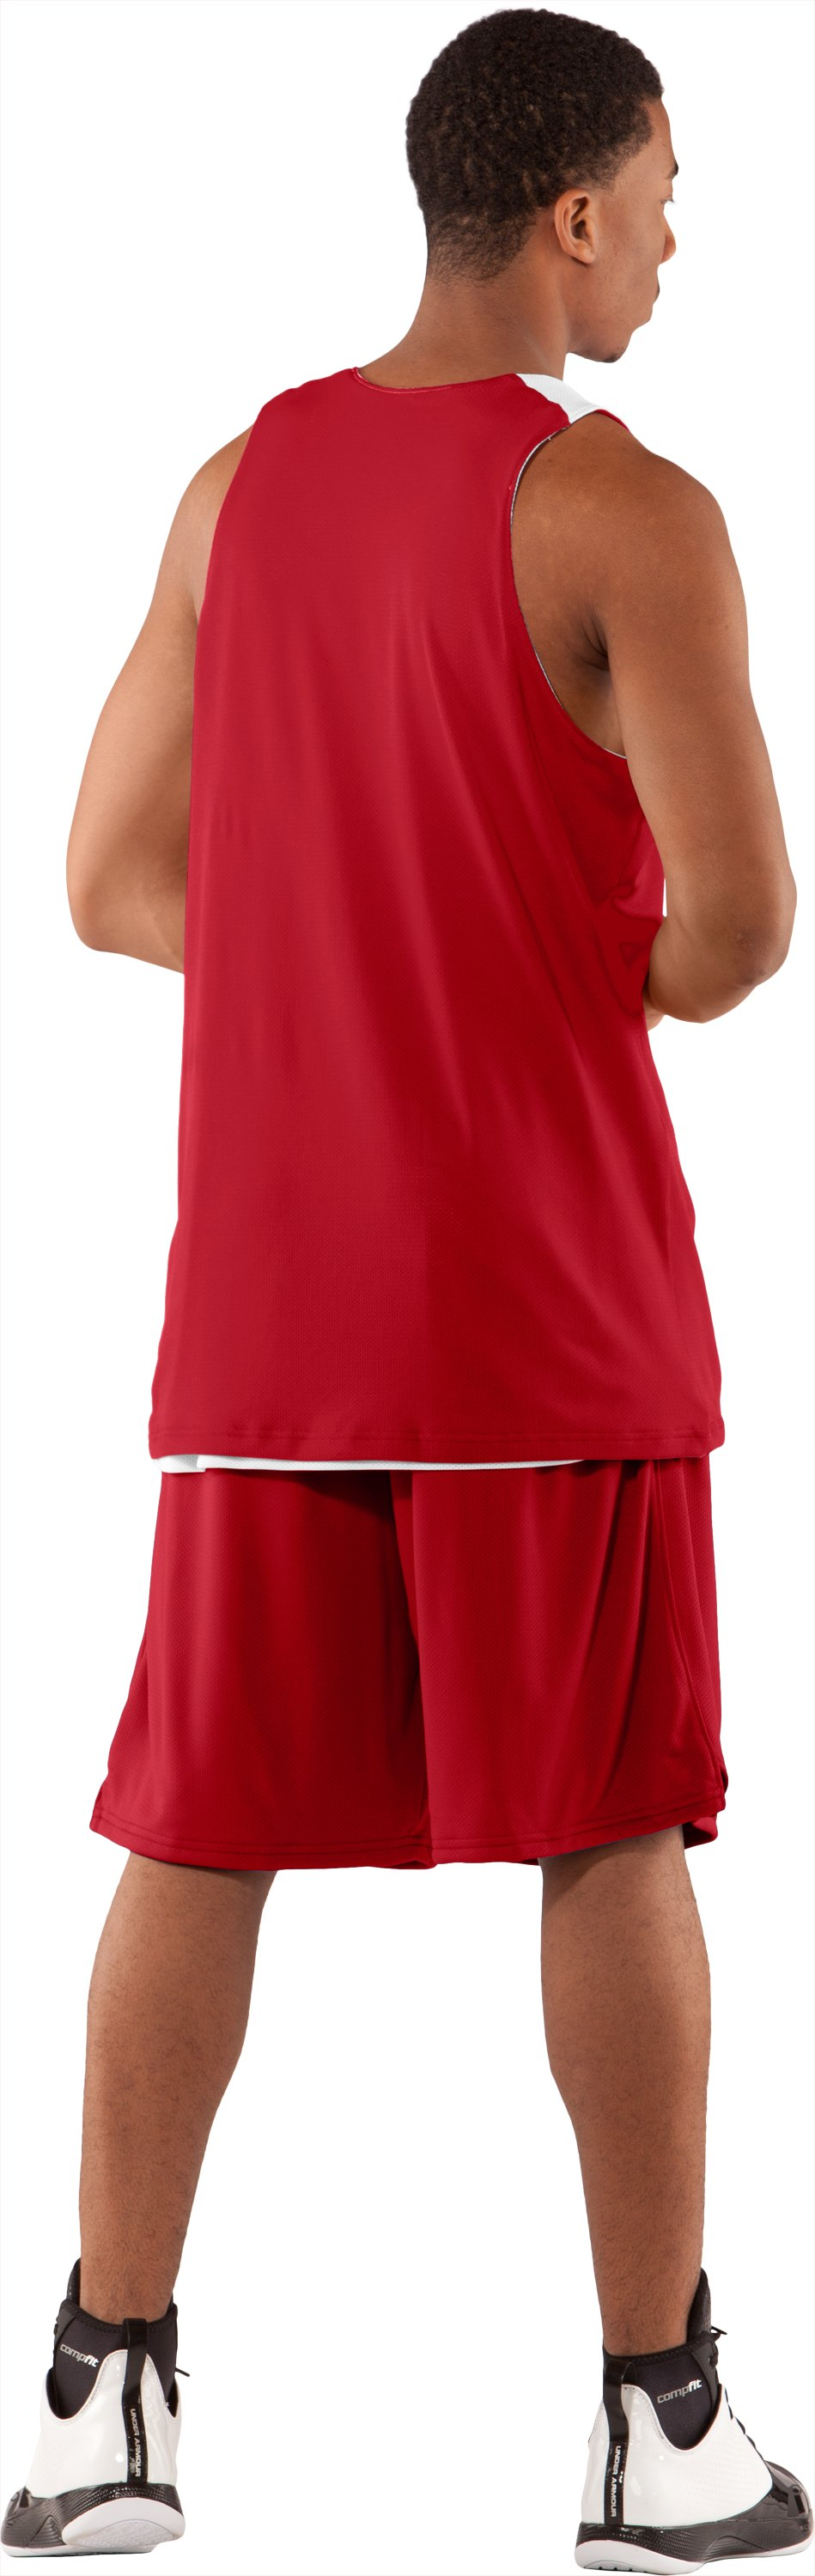 Men's Repeat Reversible Basketball Jersey, Red, Back